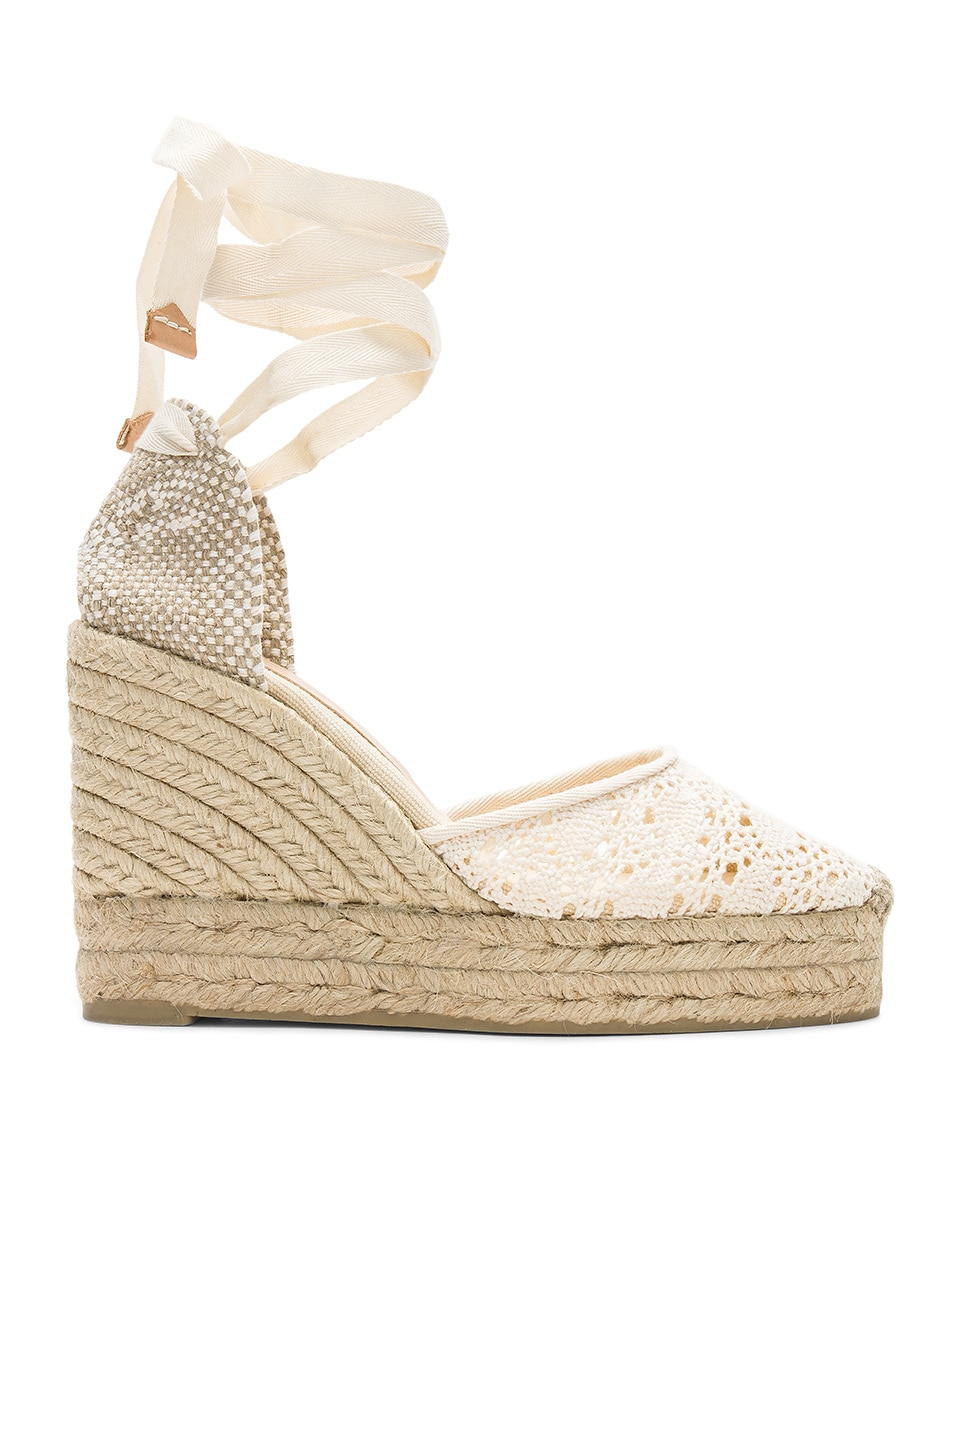 Castaner Carina Wedge in Natural